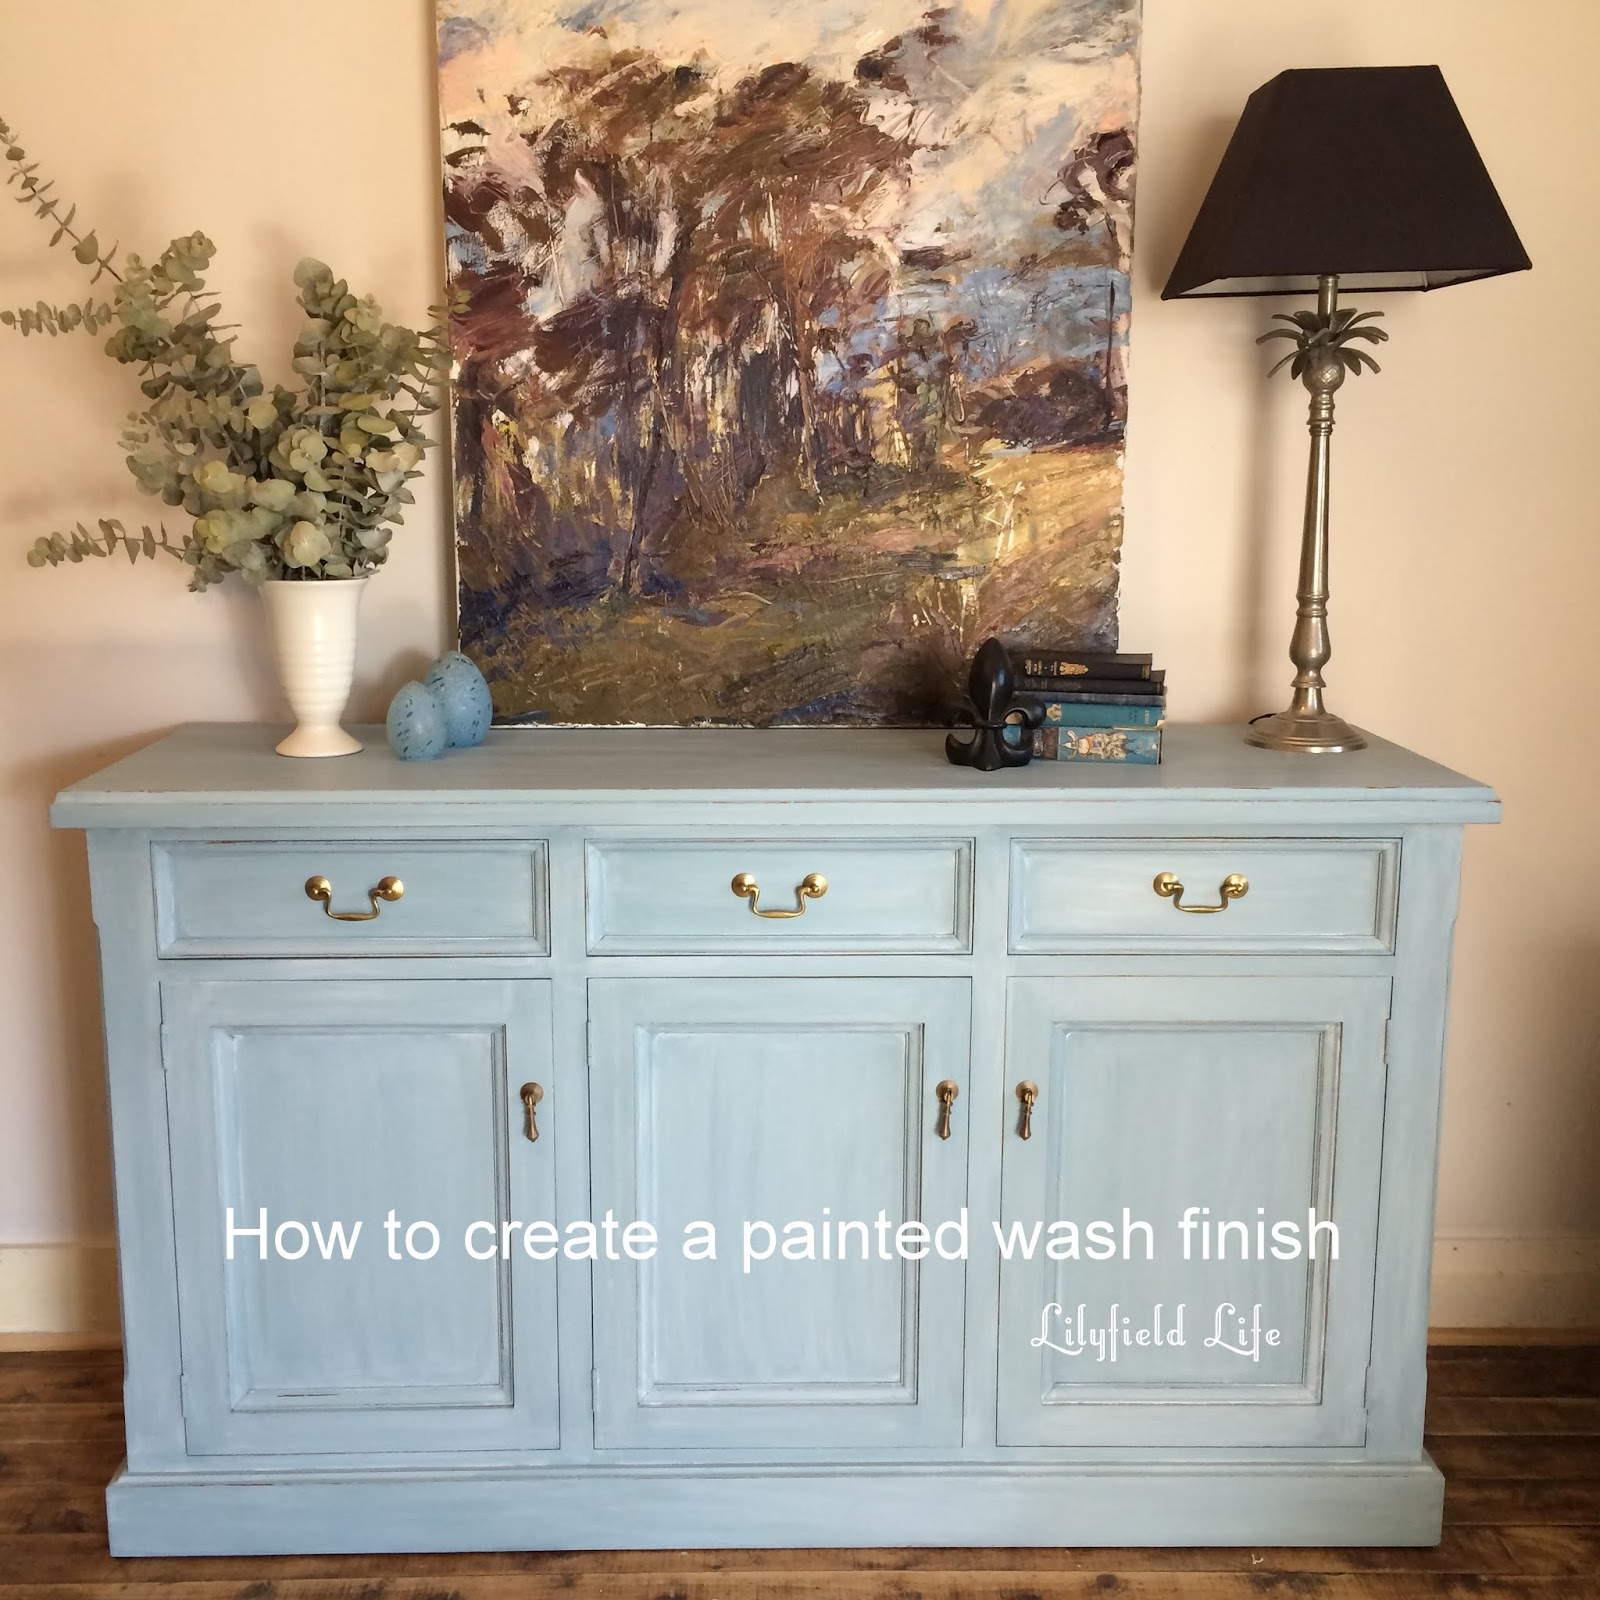 Pine Effect Bedroom Furniture Lilyfield Life How To Achieve A Painted Washed Effect On Your